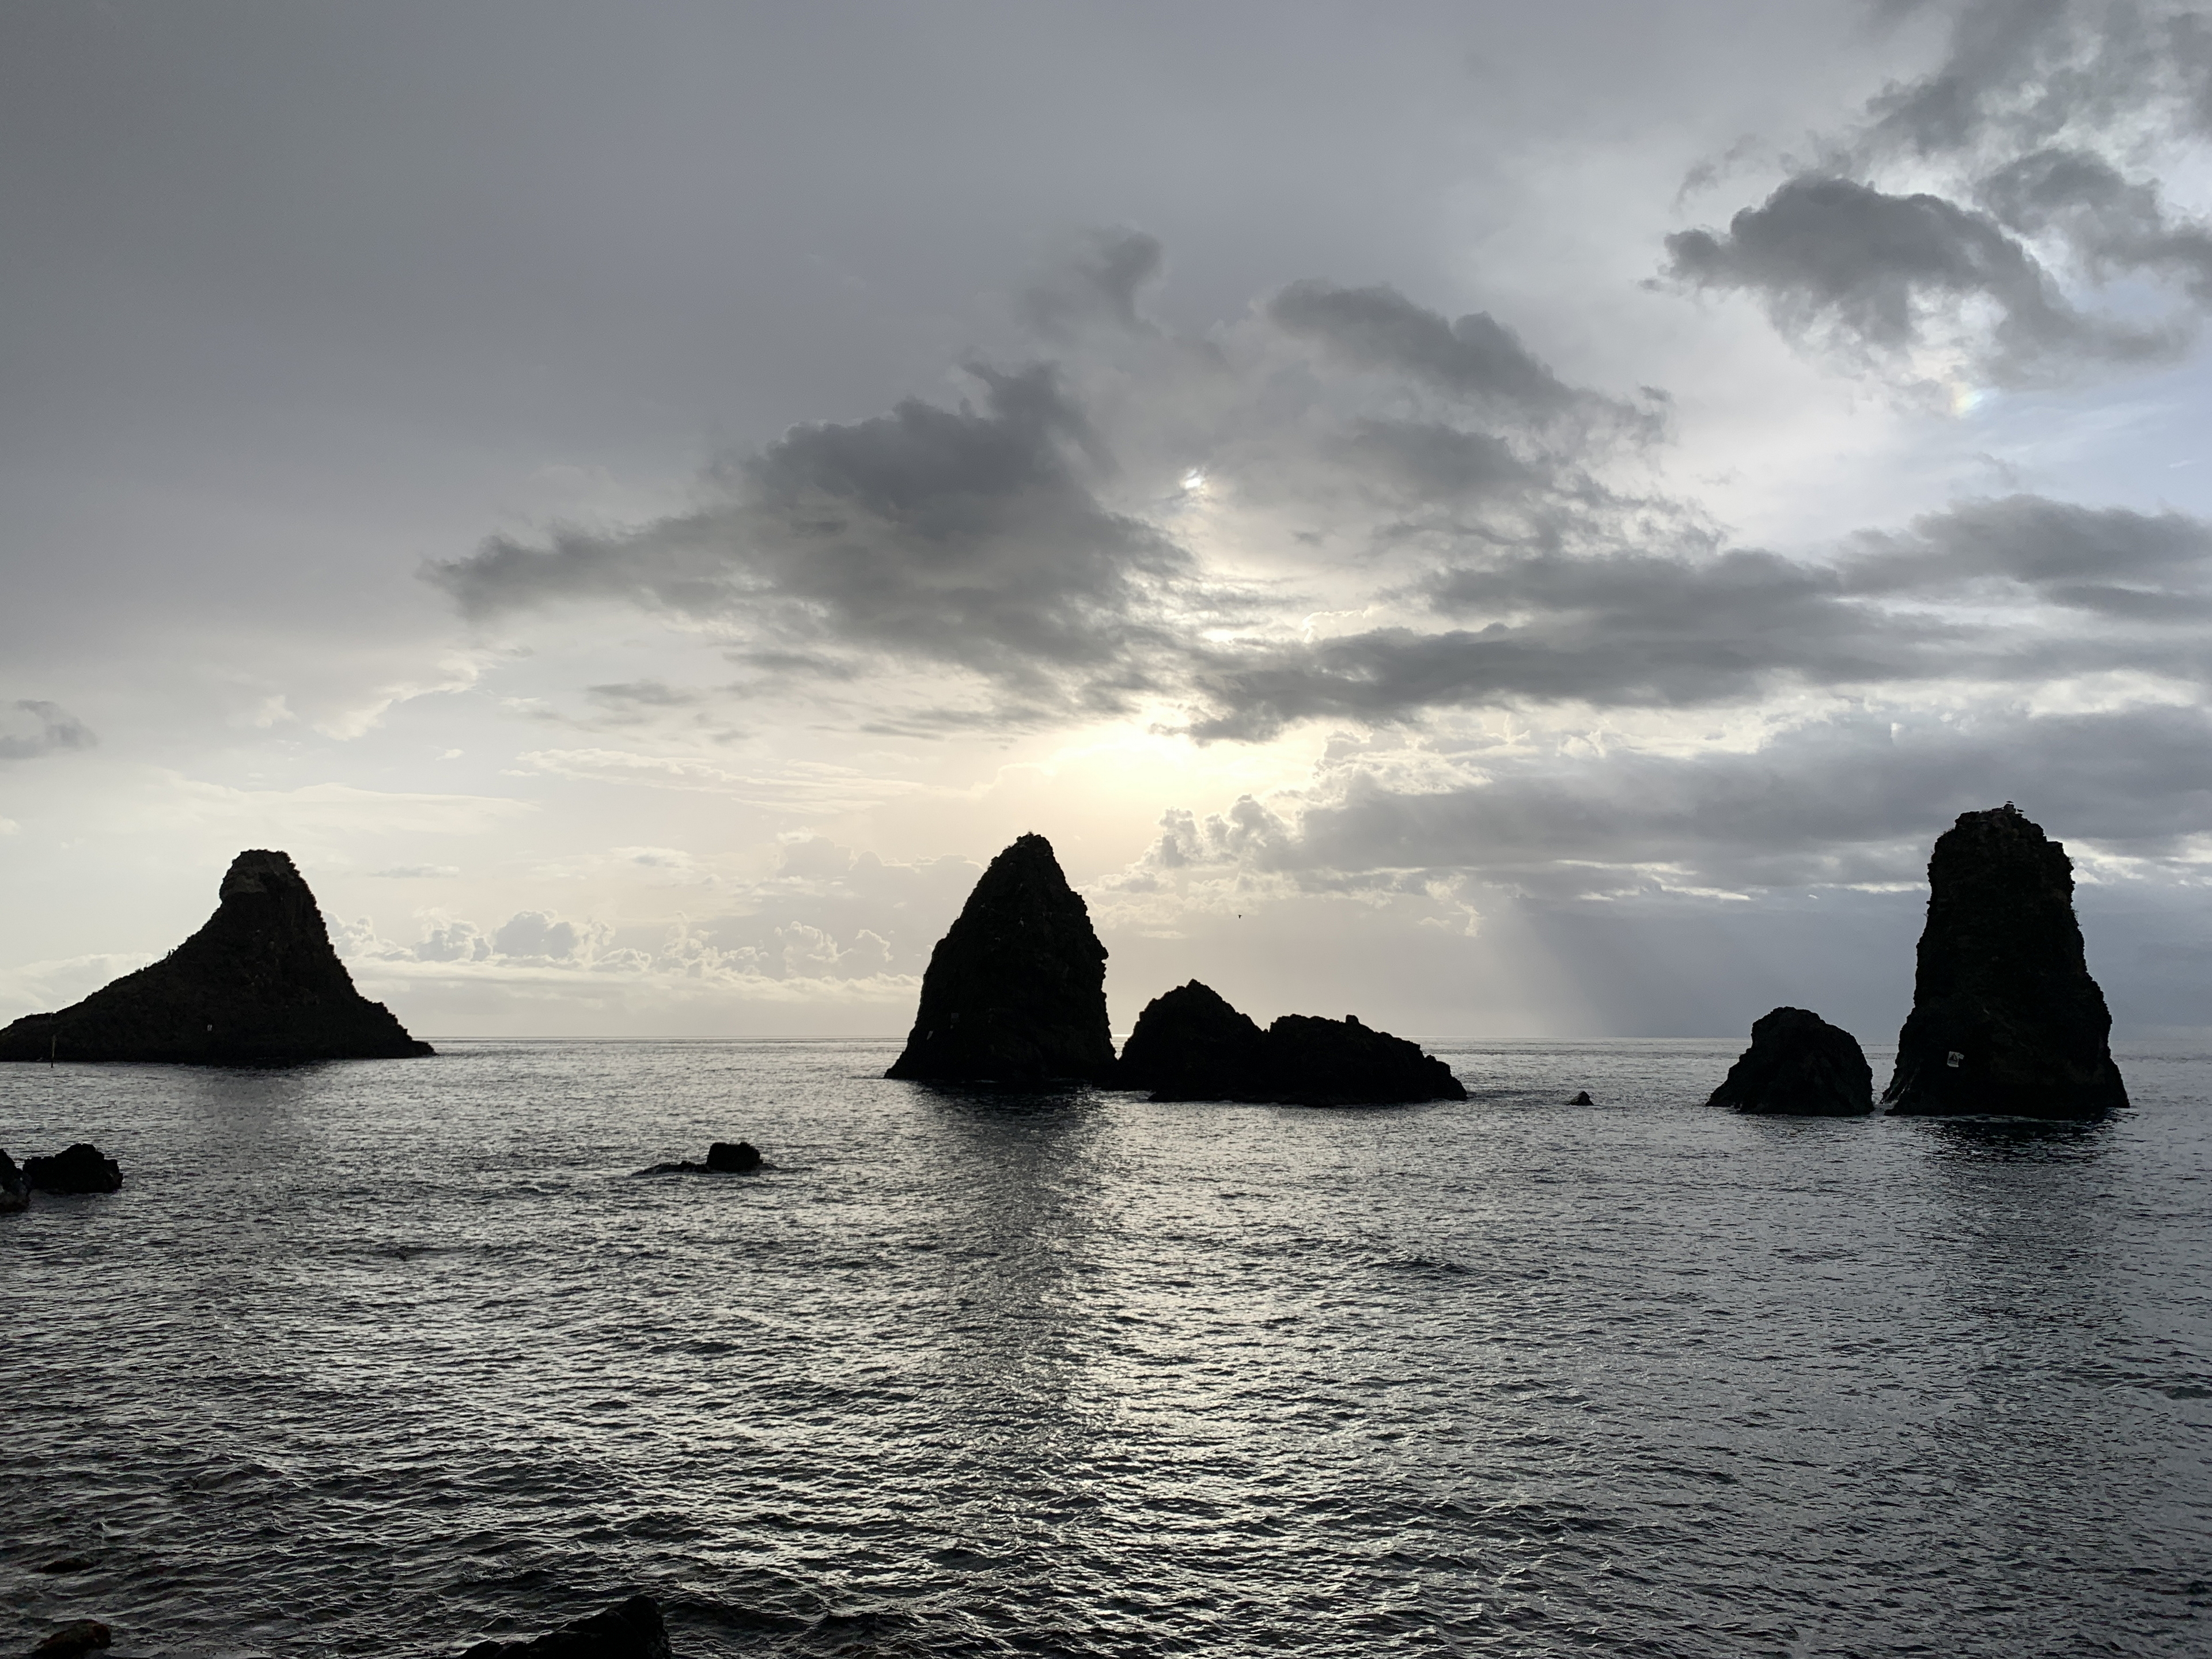 The Islands of the Cyclops, sea stacks off the coast of AciTrezza, Sicily